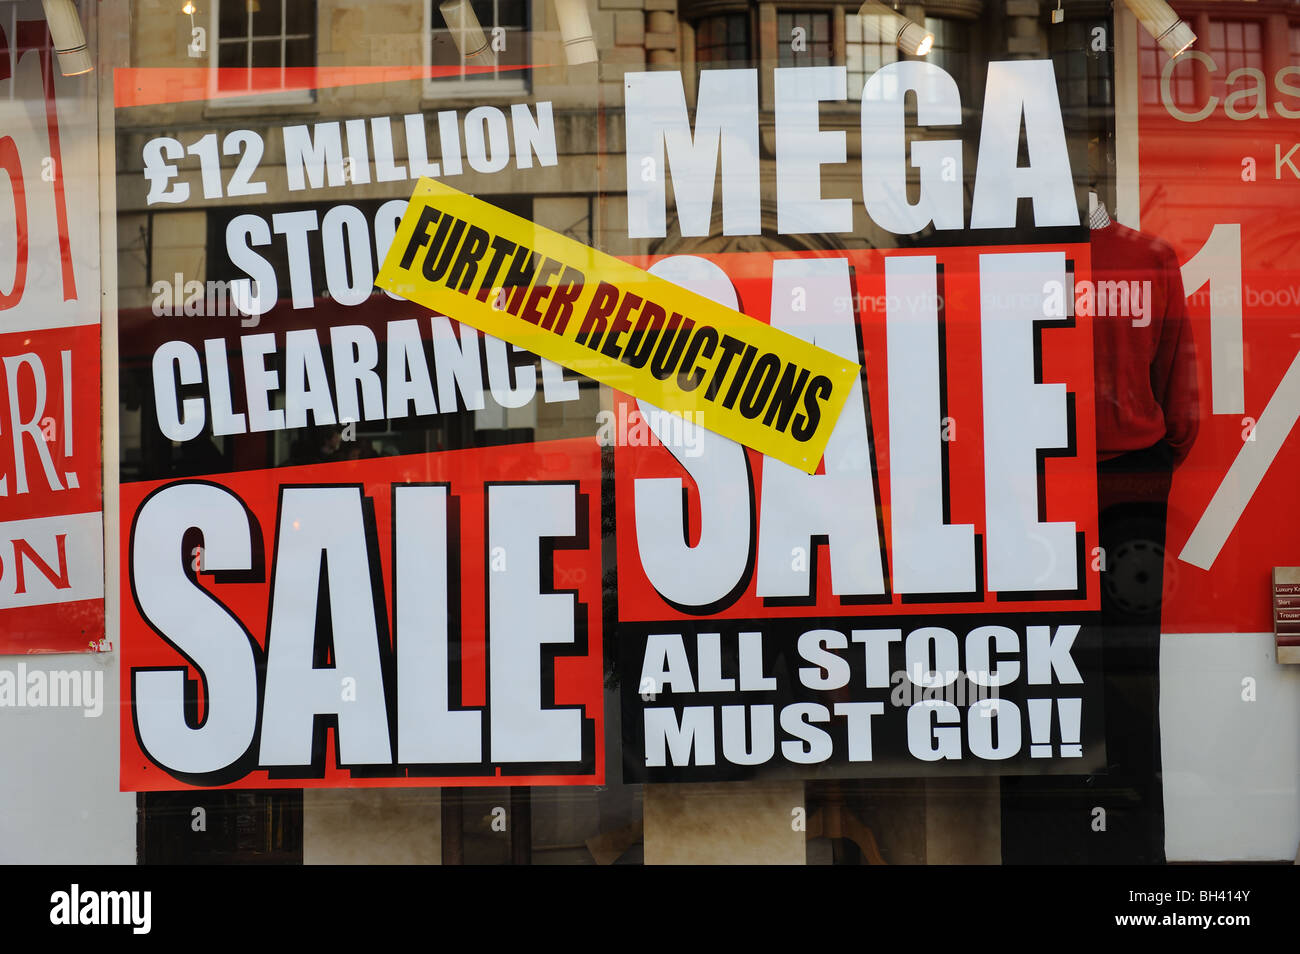 sale poster in a shop window Sale clearance cut-price recession Christmas New Year bargain January sales - Stock Image